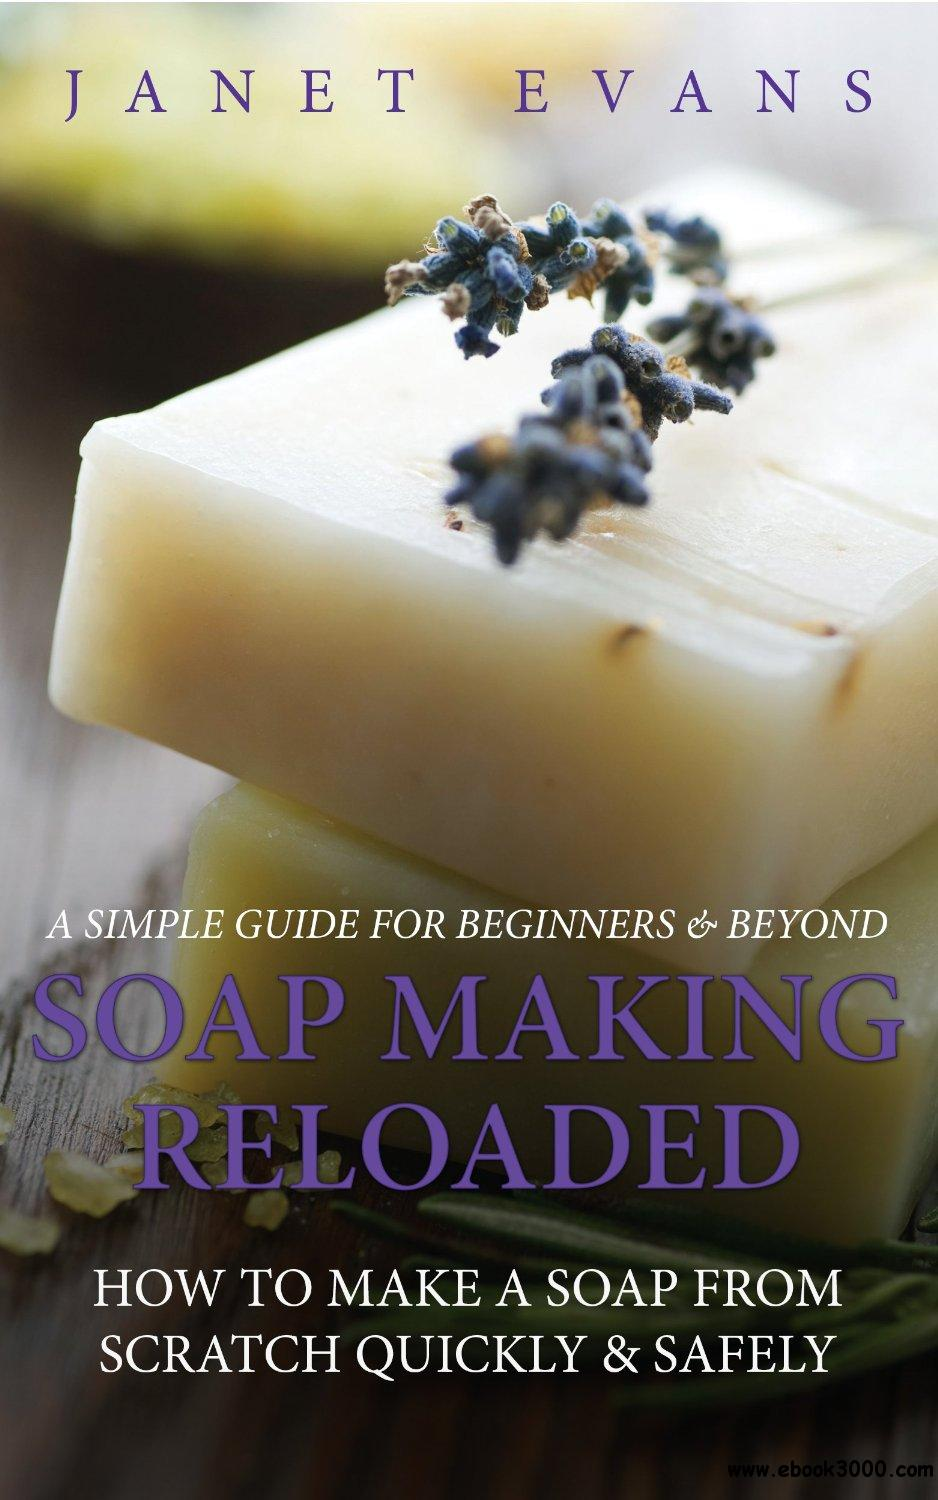 Soap Making Reloaded: How To Make A Soap From Scratch Quickly & Safely free download